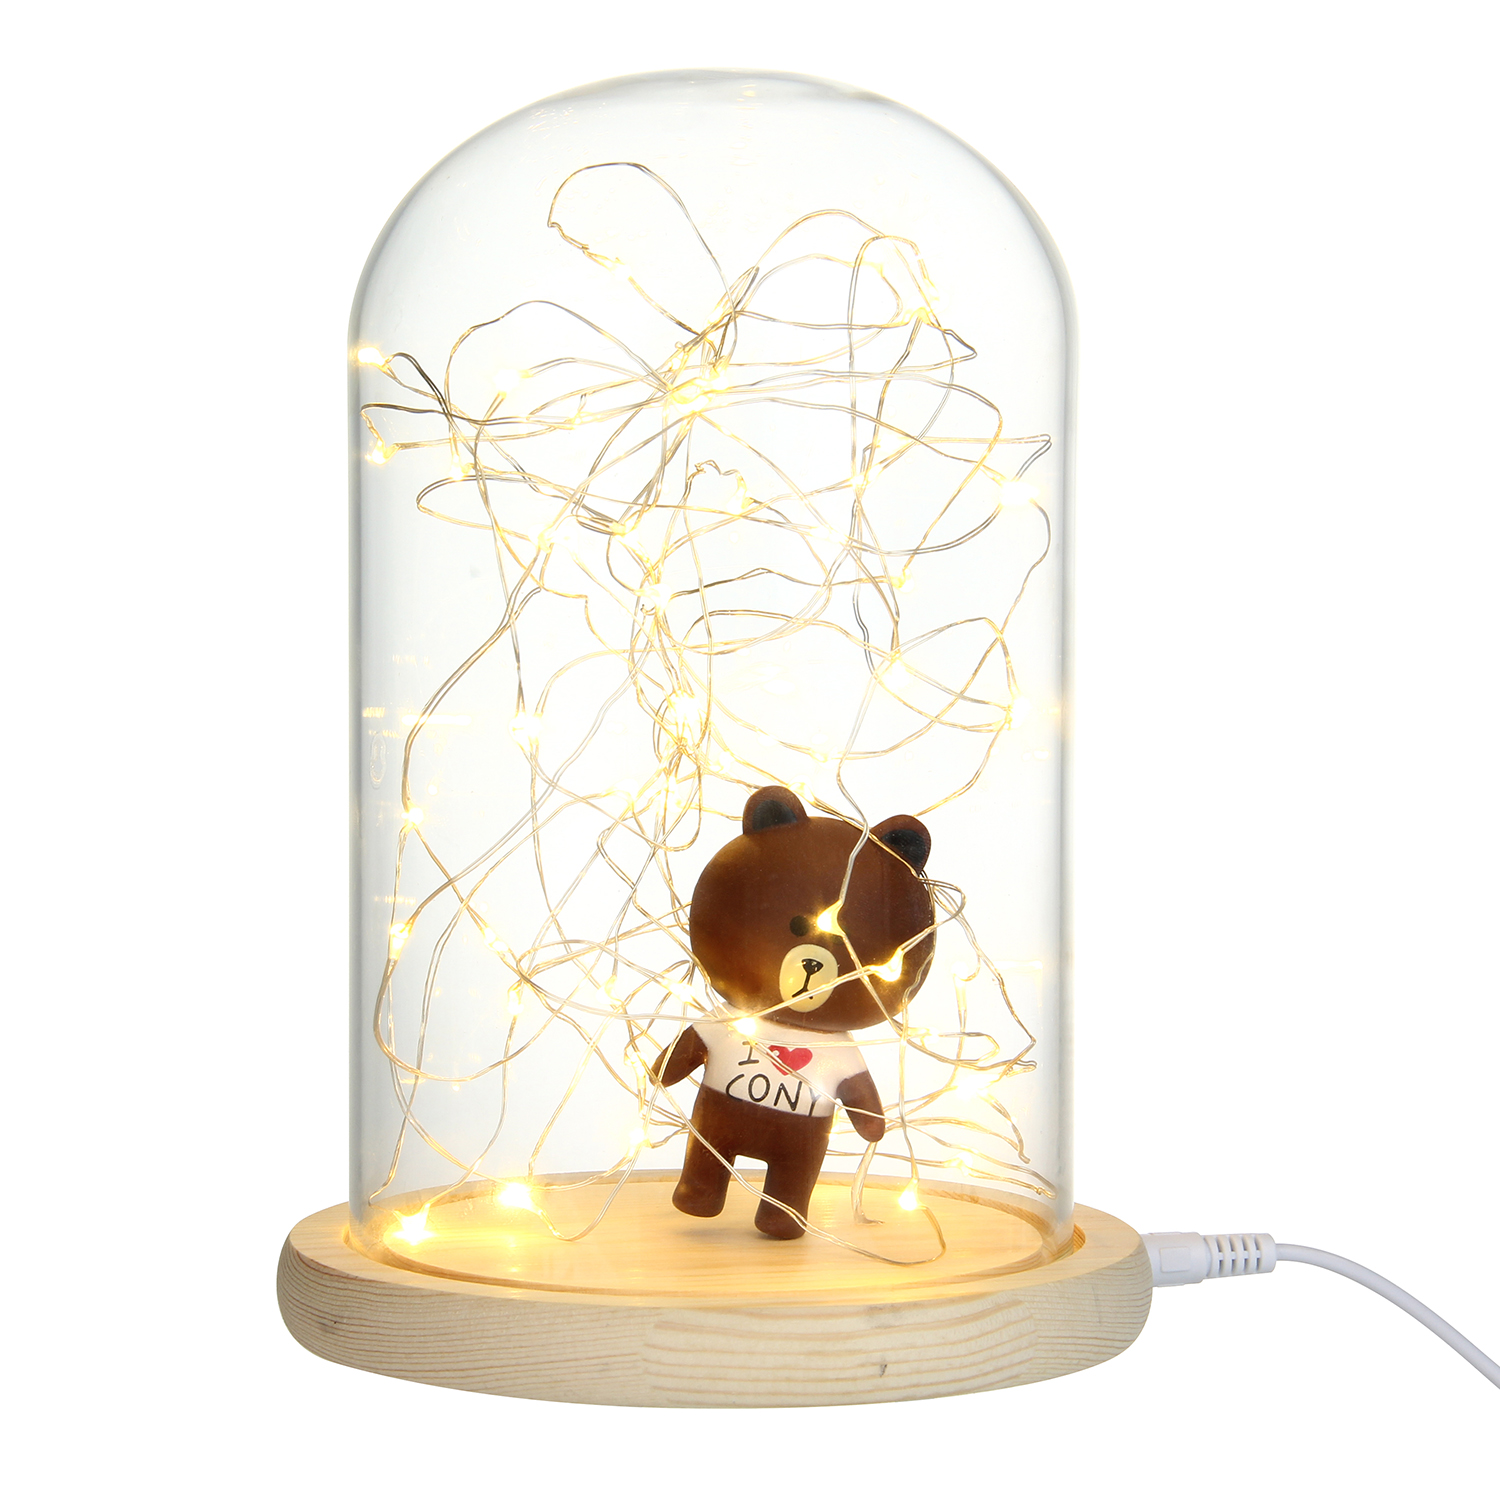 Creative Glass Dome Bell Jar Display Wooden Base with LED Light Warm Fairy Starry String Lights Desk Ornament for Home Decor 9